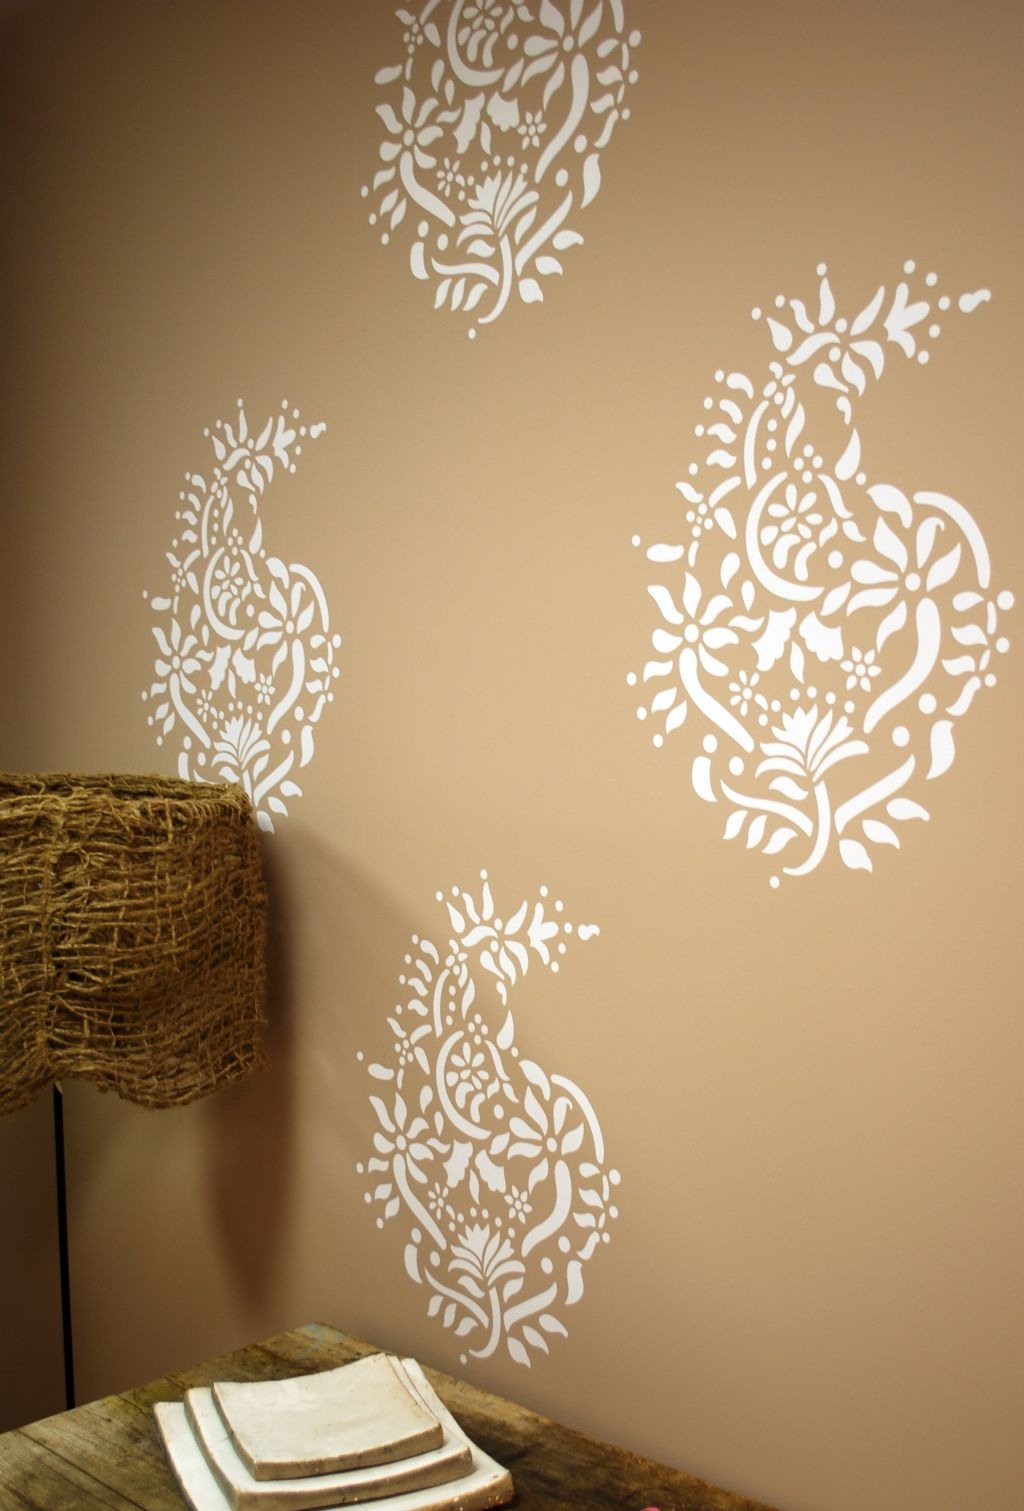 Paisley pattern cool wall painting designs - Cool designs to paint ...